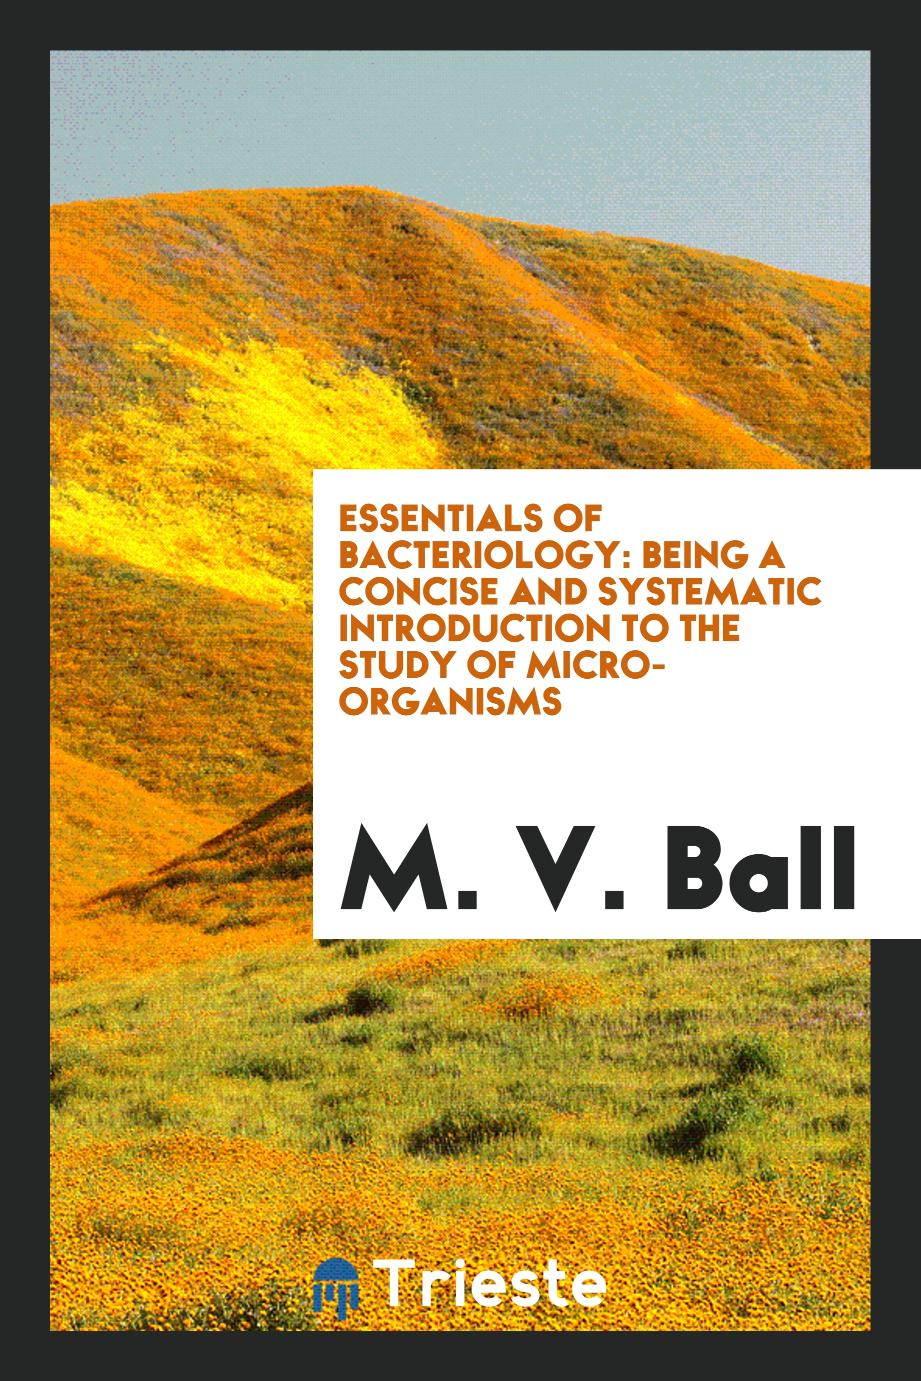 Essentials of Bacteriology: Being a Concise and Systematic Introduction to the Study of Micro-Organisms